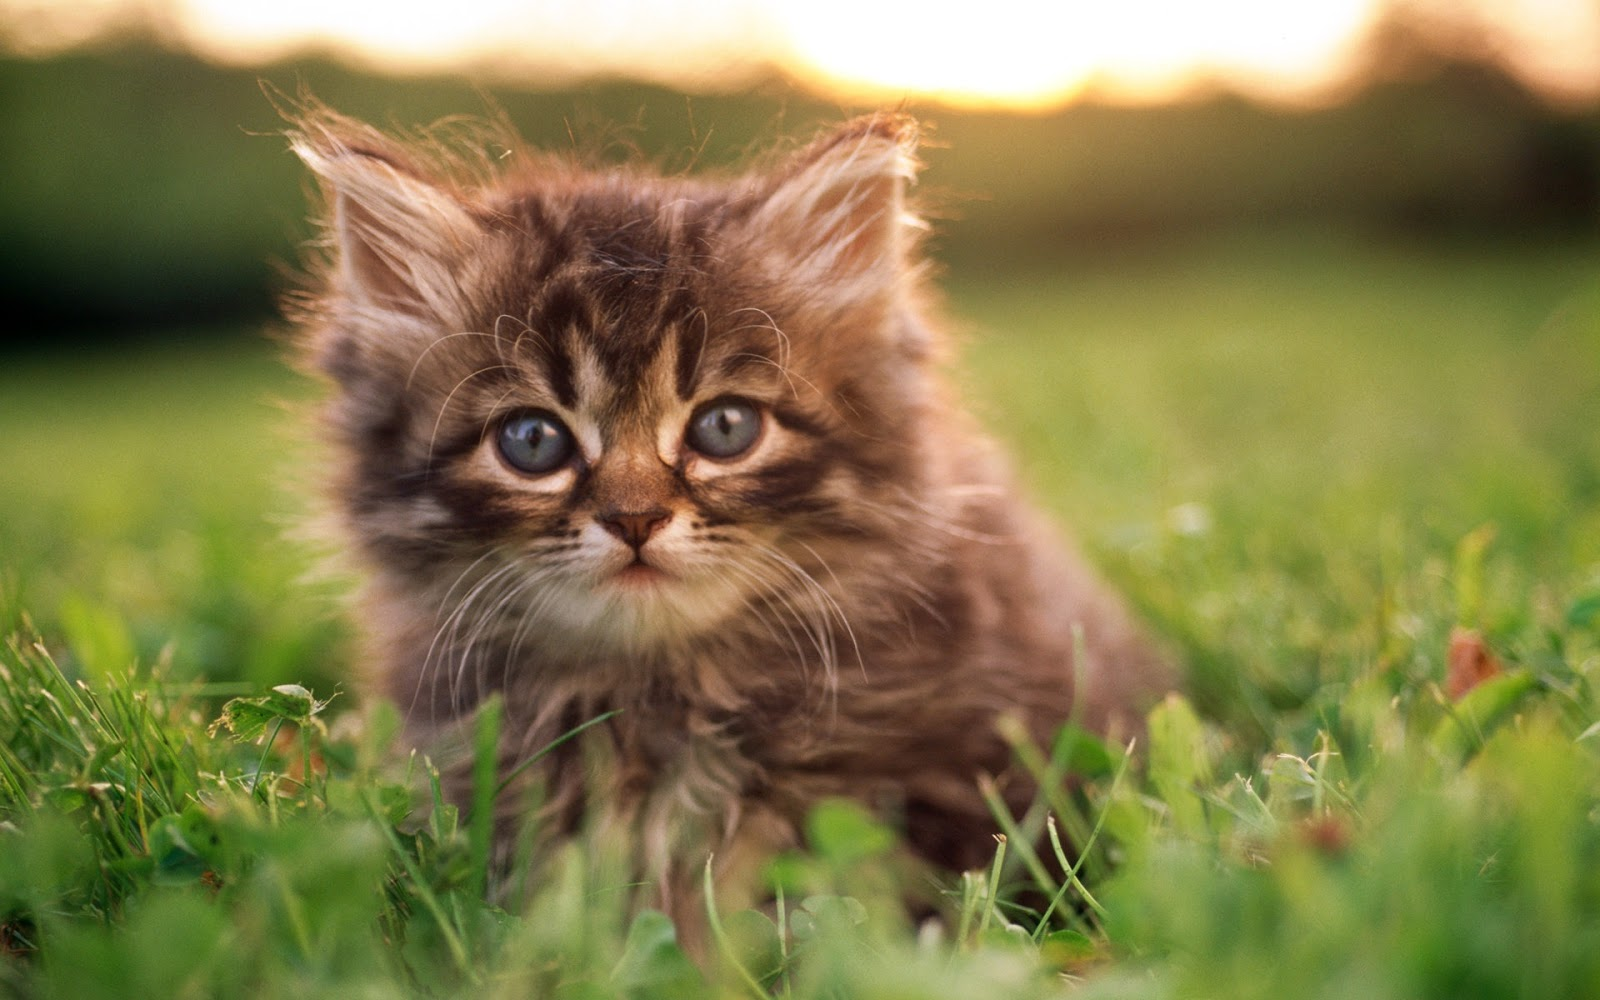 Kittens In Grass Wallpapers